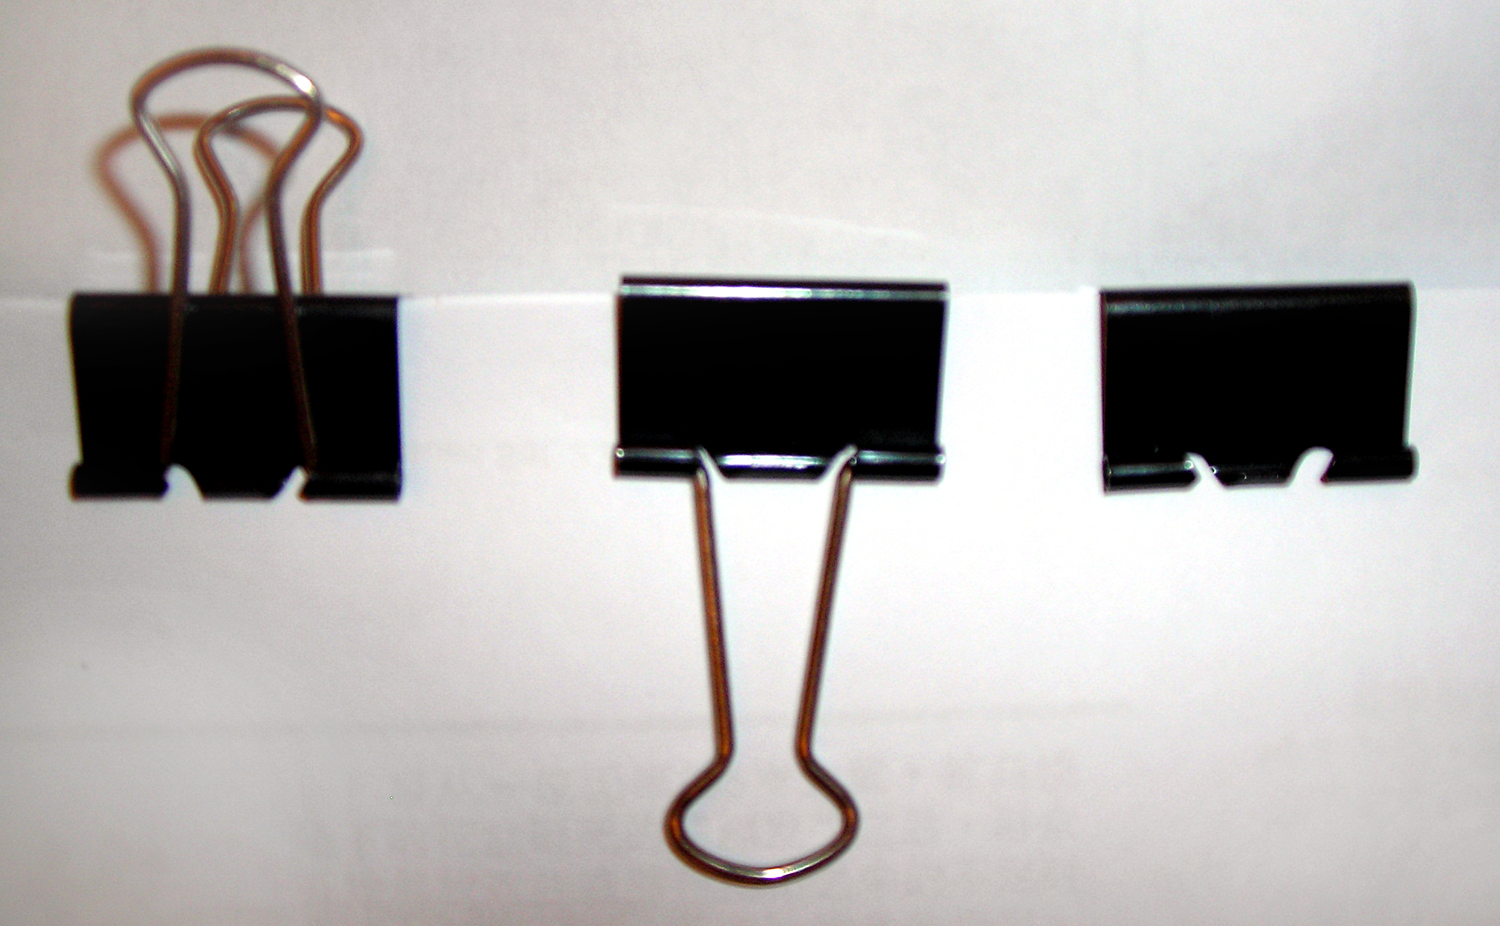 Three binder clips Simphome com